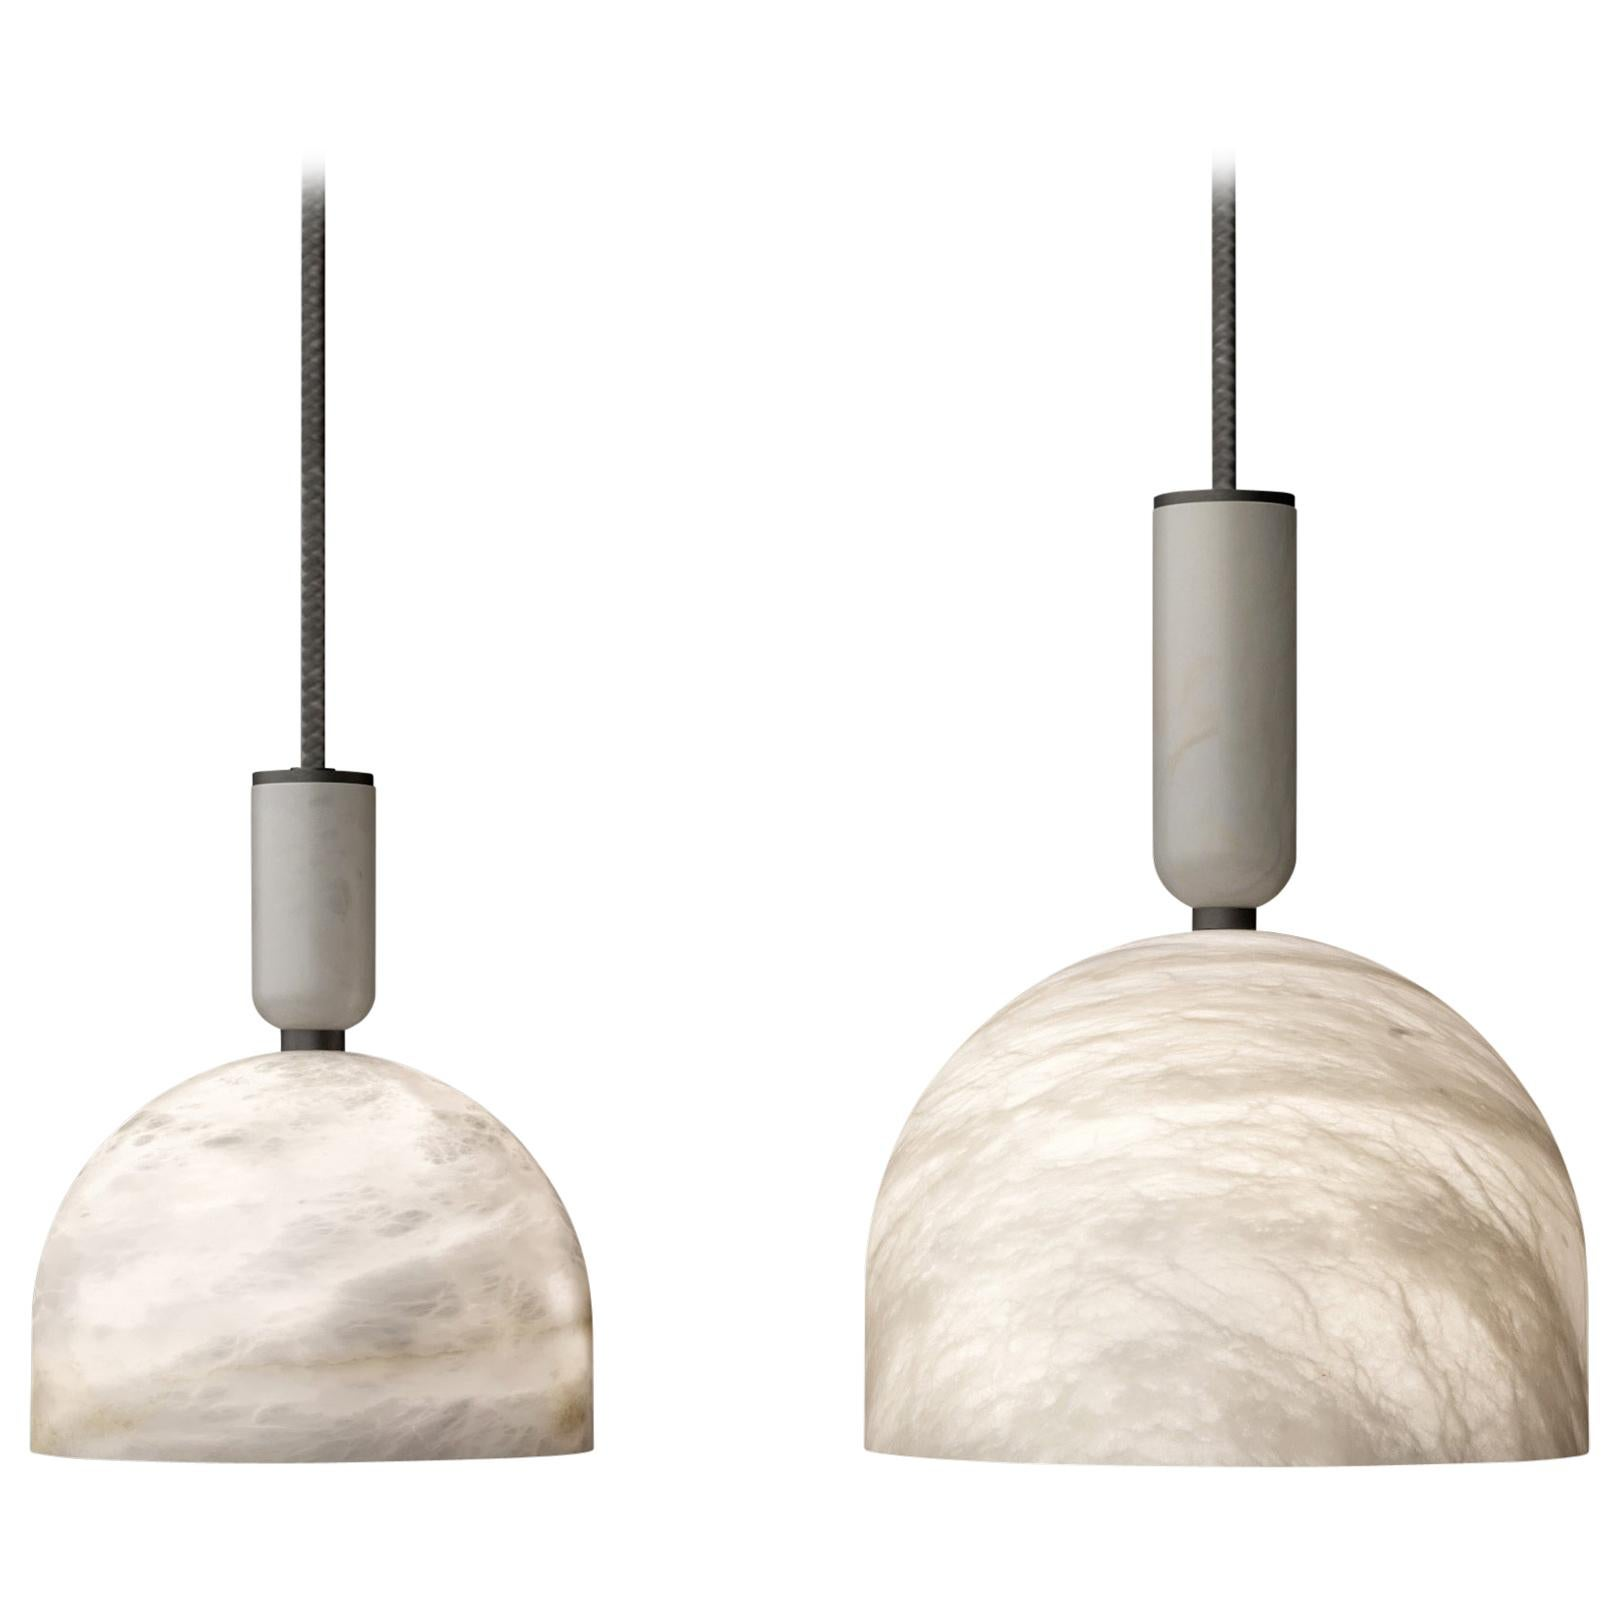 Set of 2 Alabaster Oki Pendant Light by Atelier Alain Ellouz